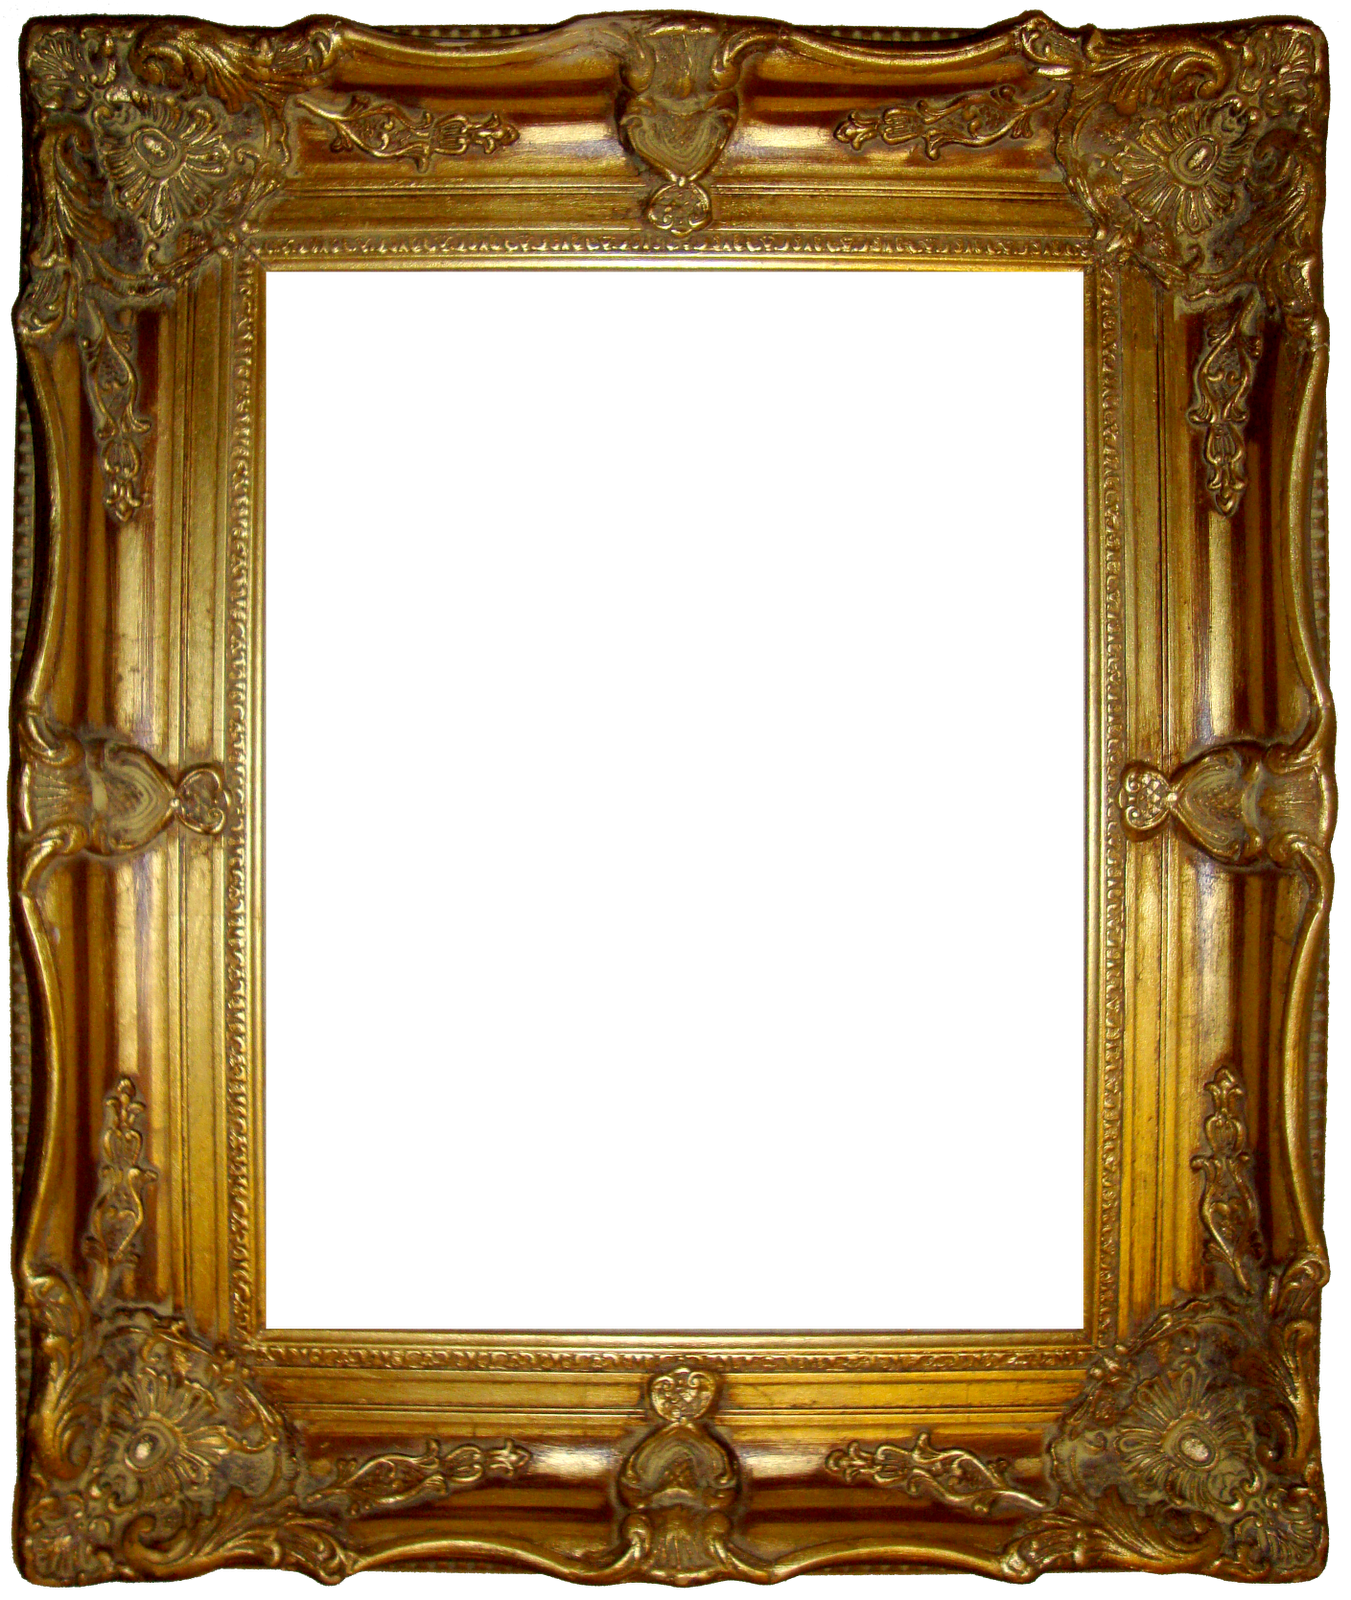 13 free digital scrapbooking antique ornate photo frames 13 free digital scrapbooking antique ornate photo frames jeuxipadfo Image collections